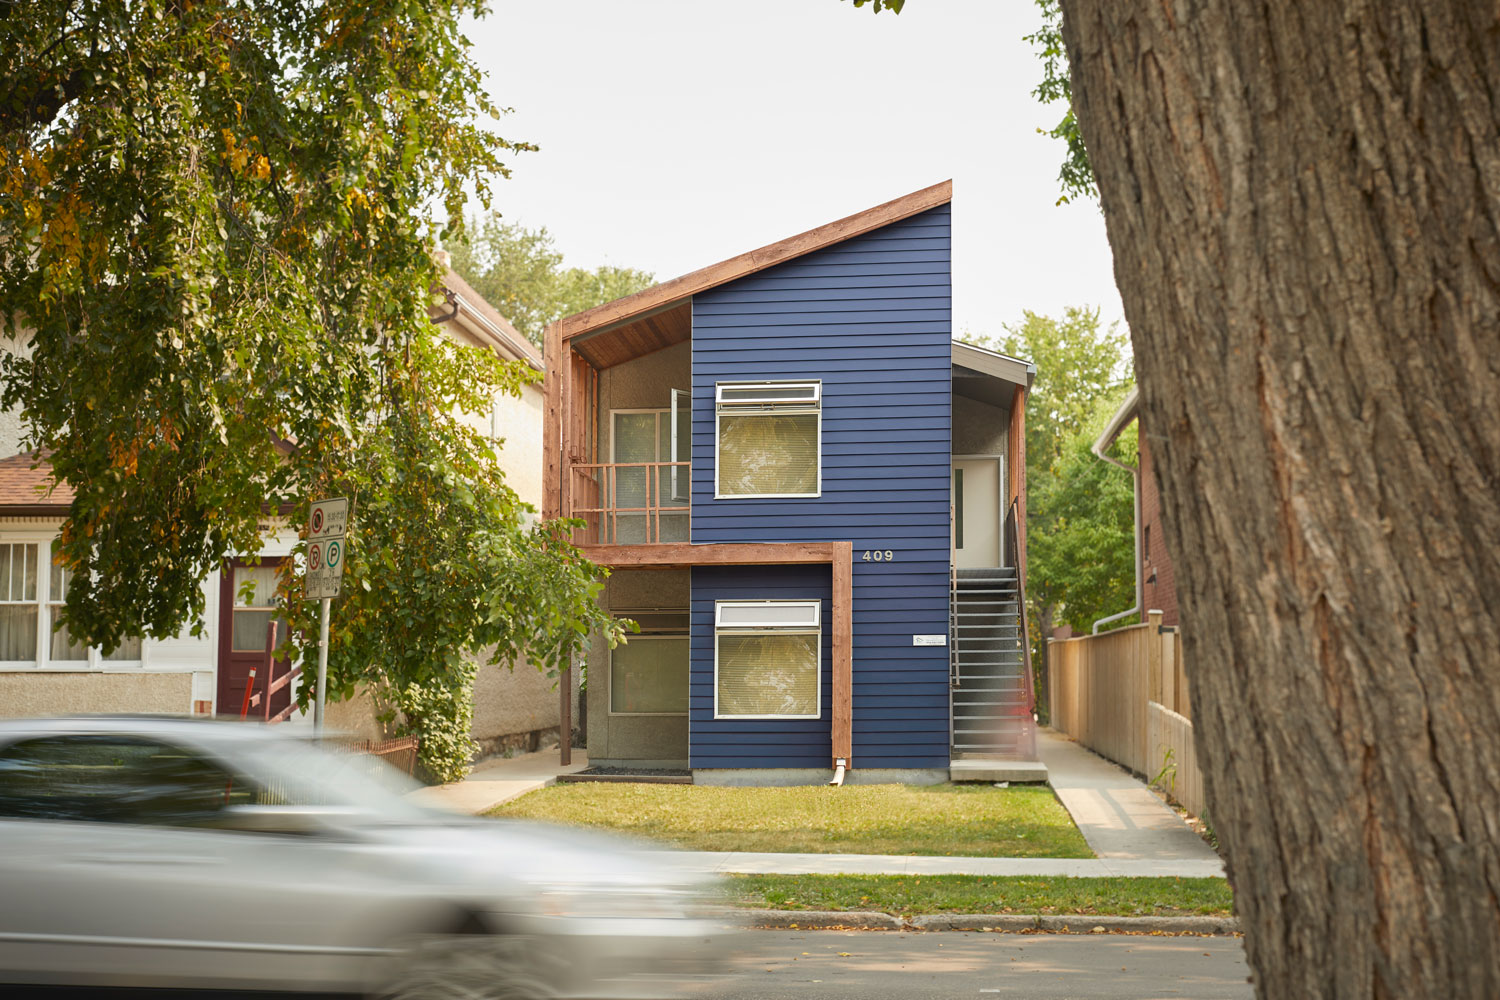 residential-architecture-winnipeg-cohlmeyer-architects.jpg